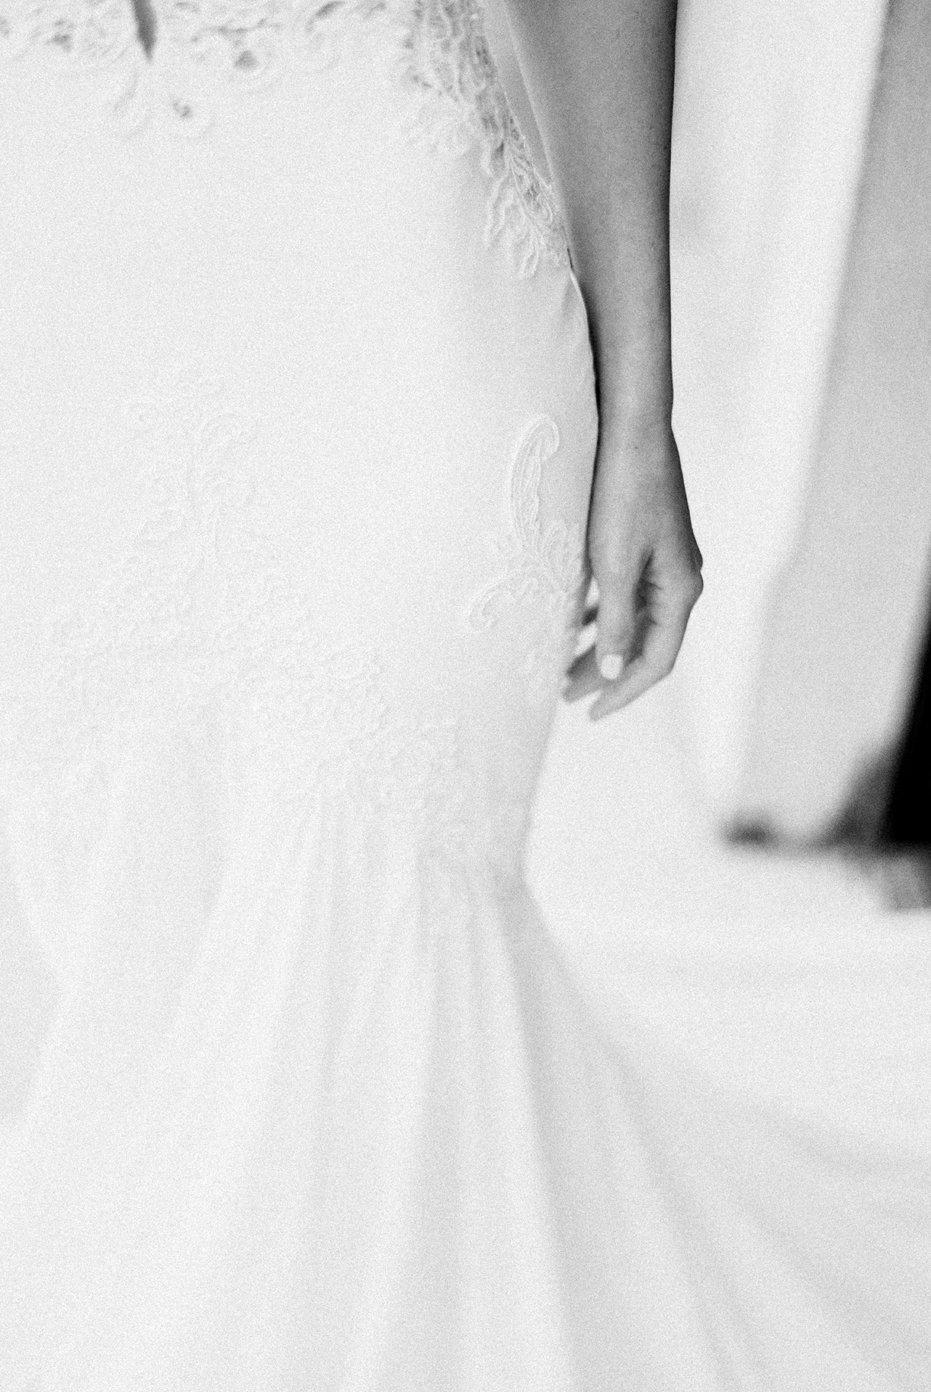 lake_como_italy_villa_balbianello_destination_wedding_melanie_gabrielle_016